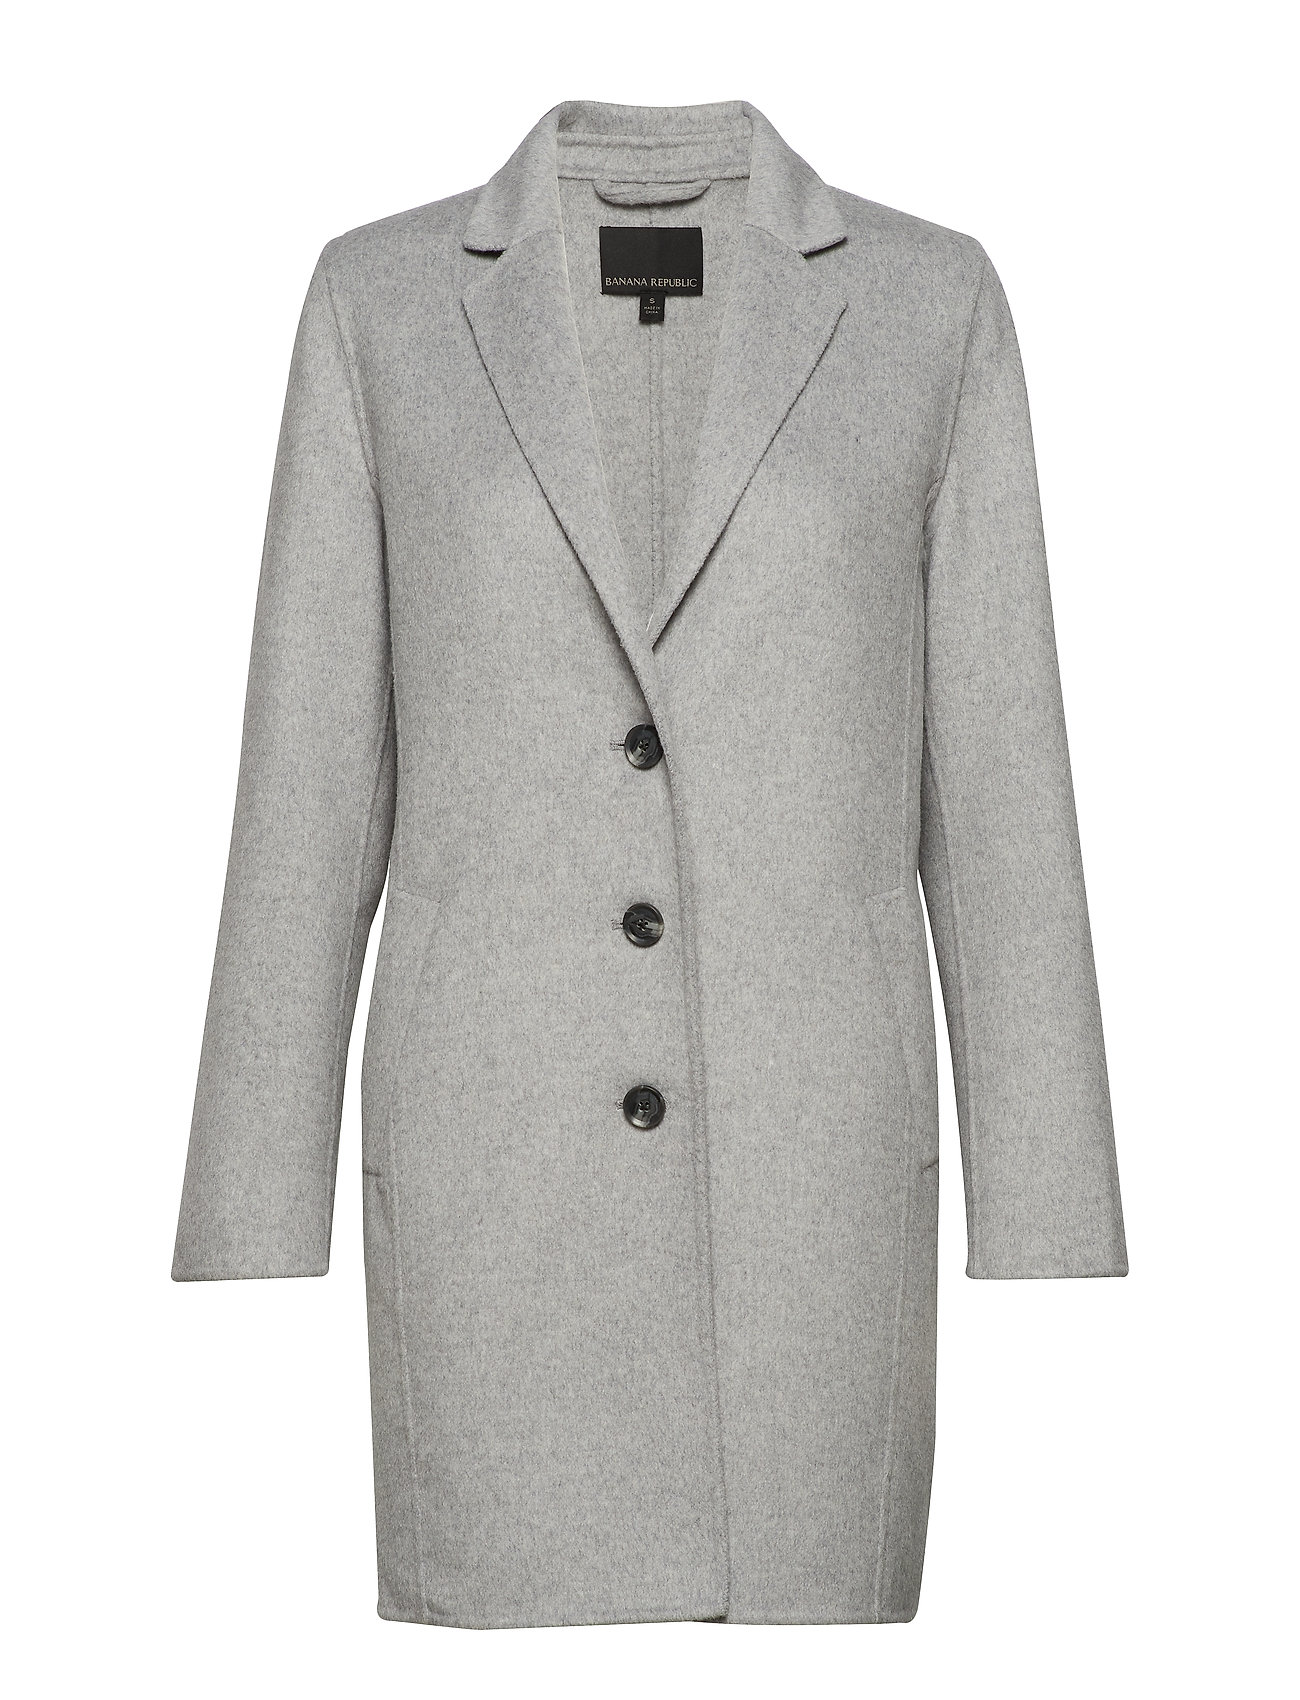 Banana Republic Double-Faced Topcoat - MEDHEATHER GREY